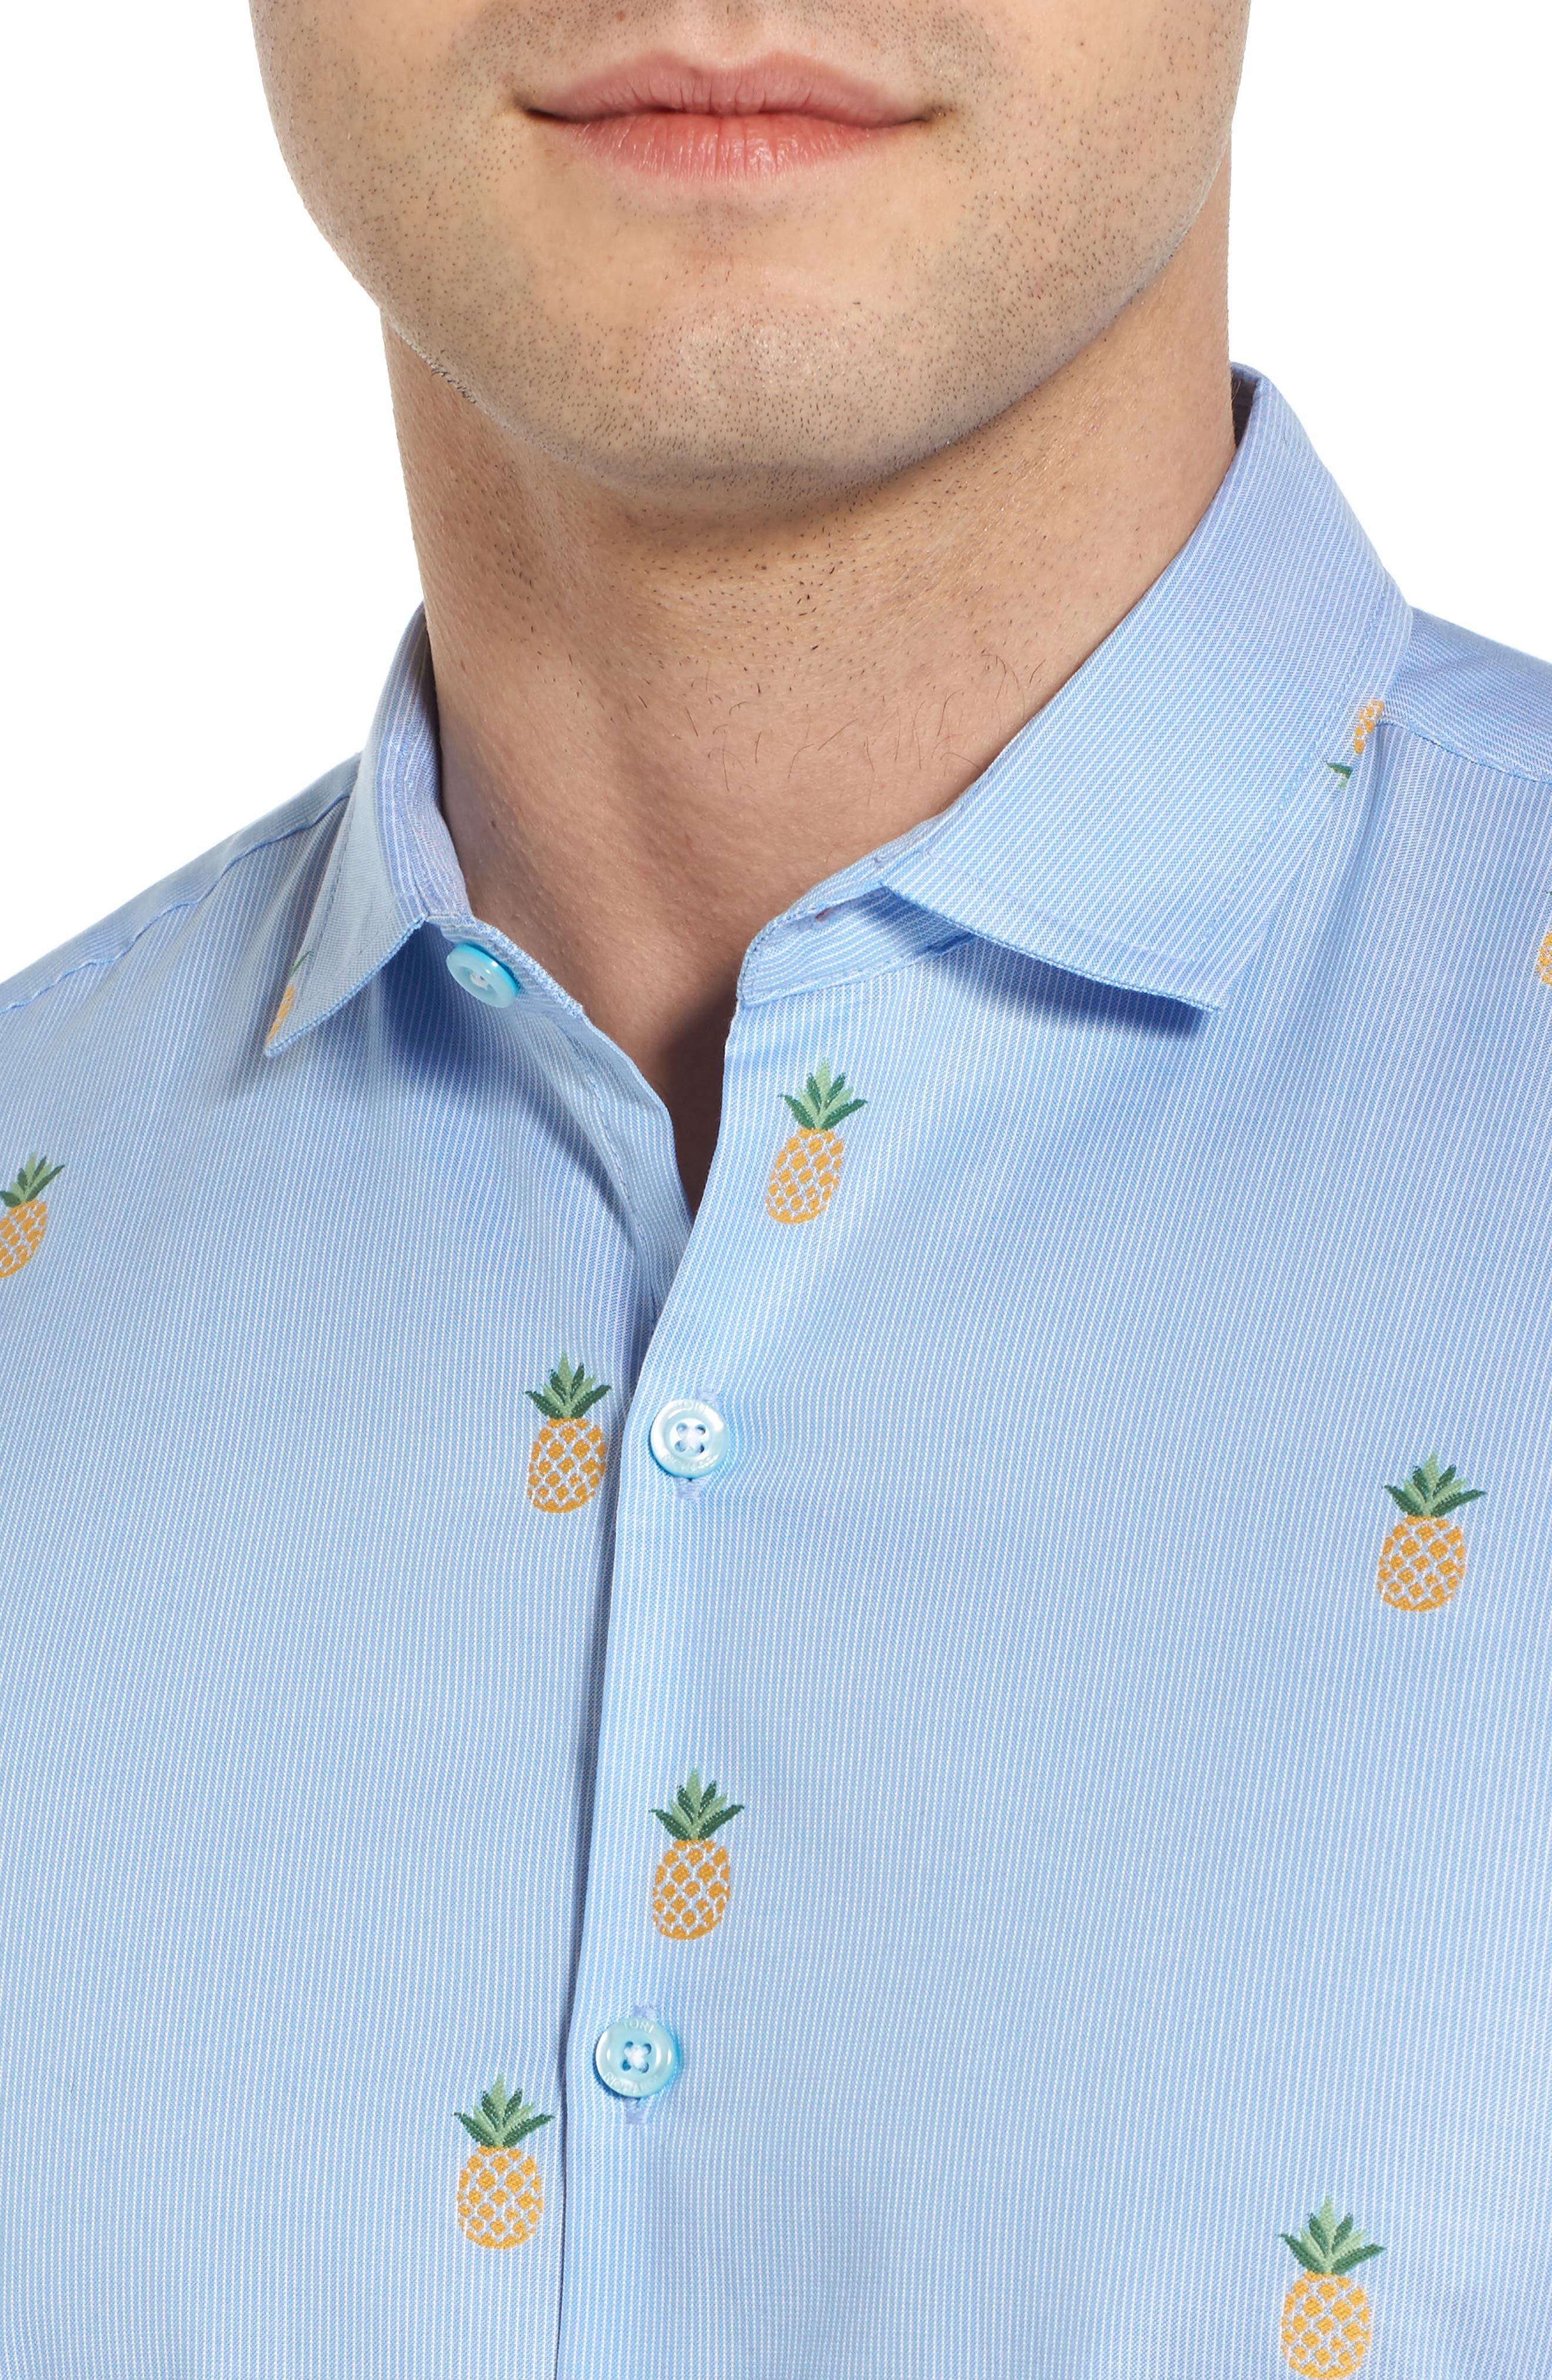 Dole 'N' Row Trim Fit Embroidered Sport Shirt,                             Alternate thumbnail 4, color,                             409